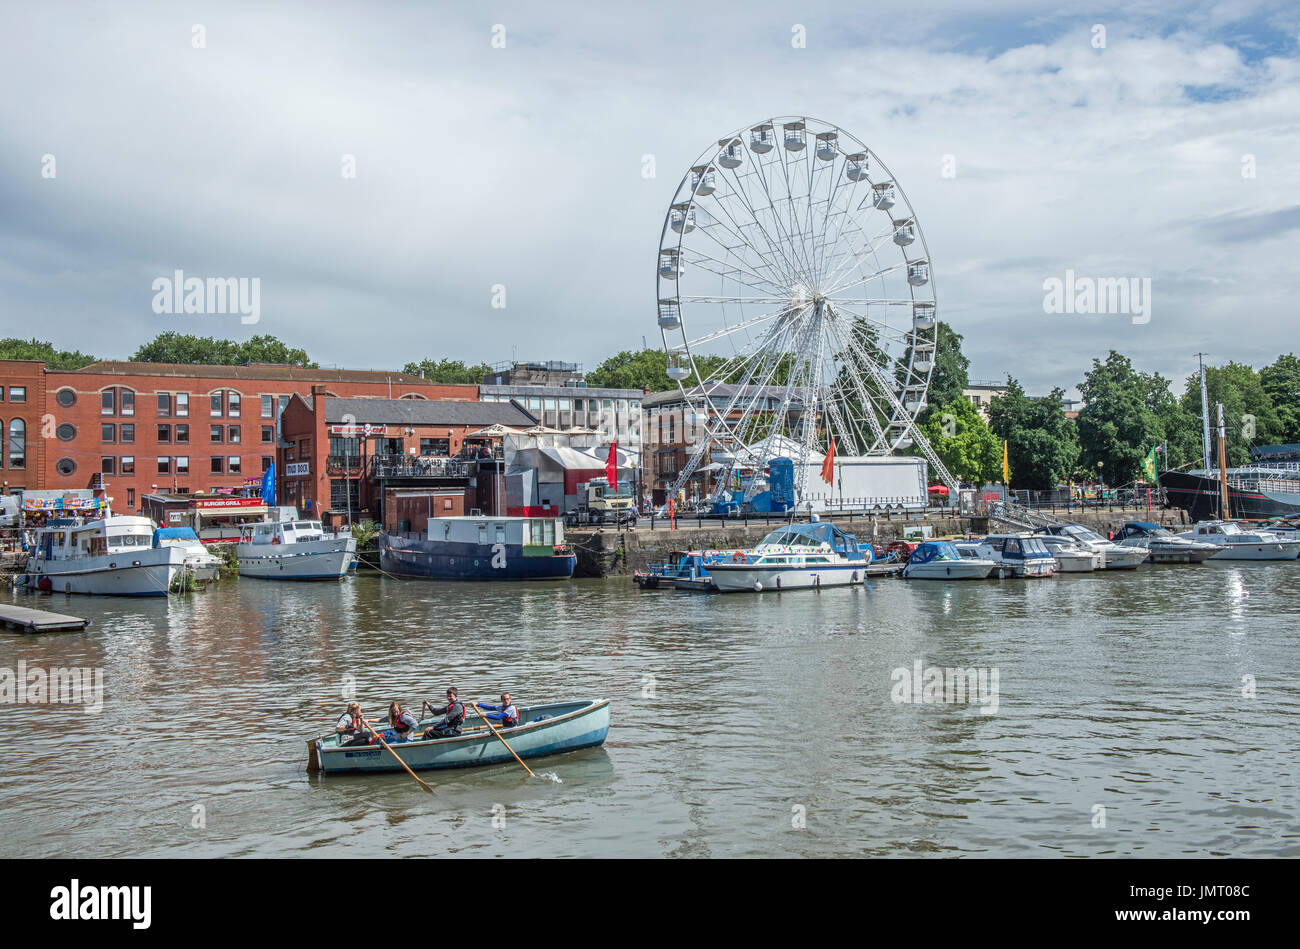 Rowing Boat and Ferris Wheel Bristol Harbour - Stock Image